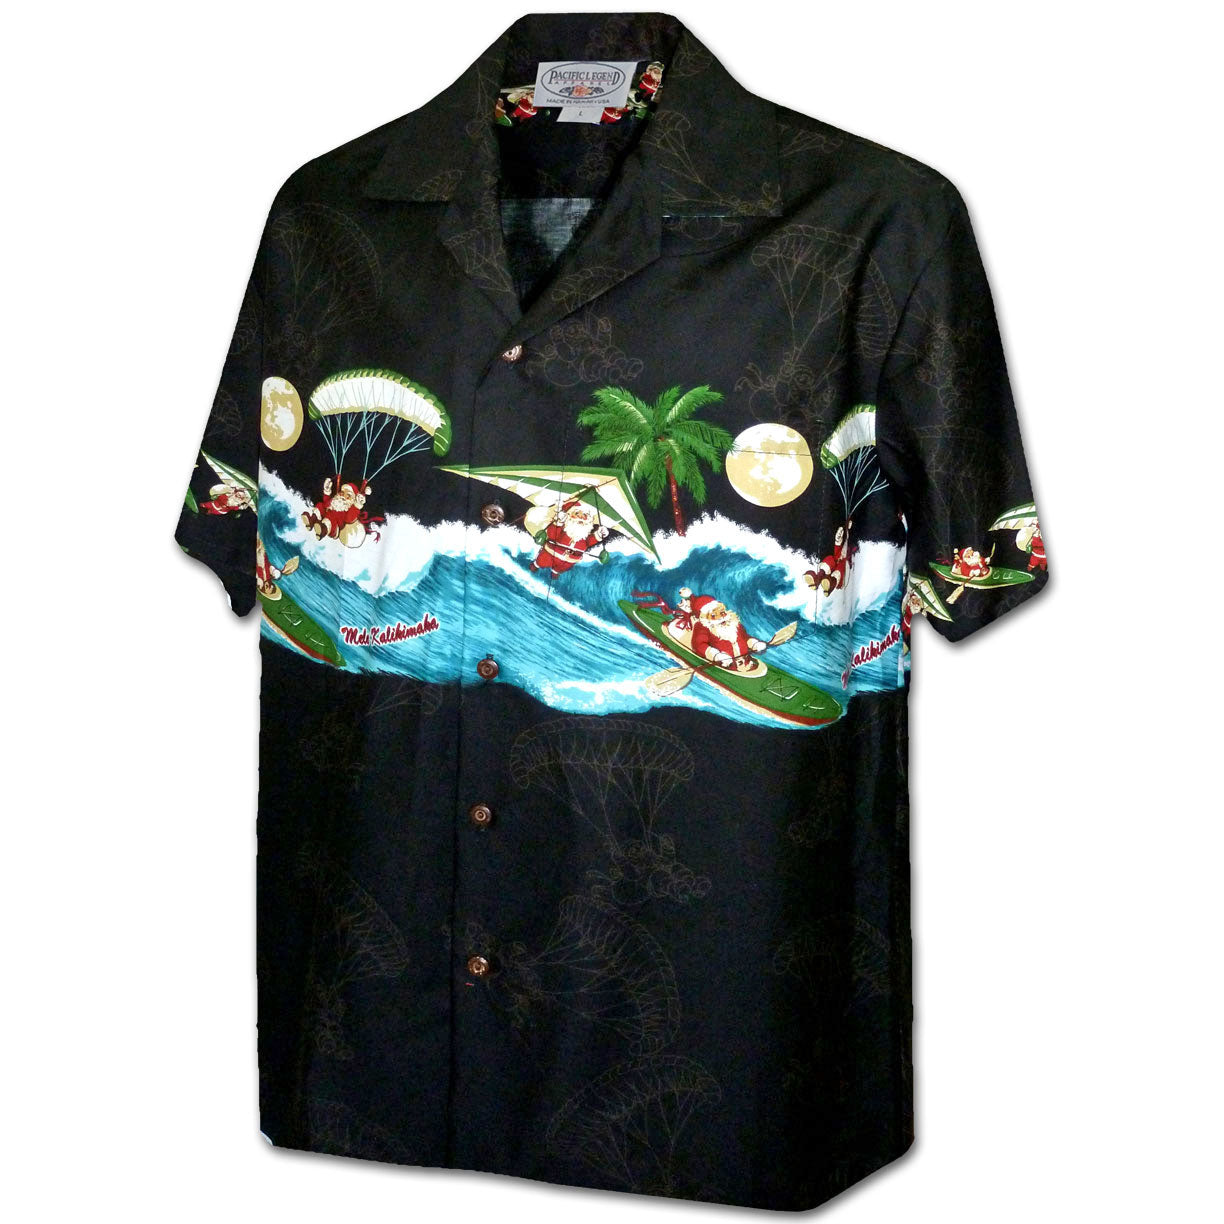 Hang Gliding Santa Black Hawaiian Shirt